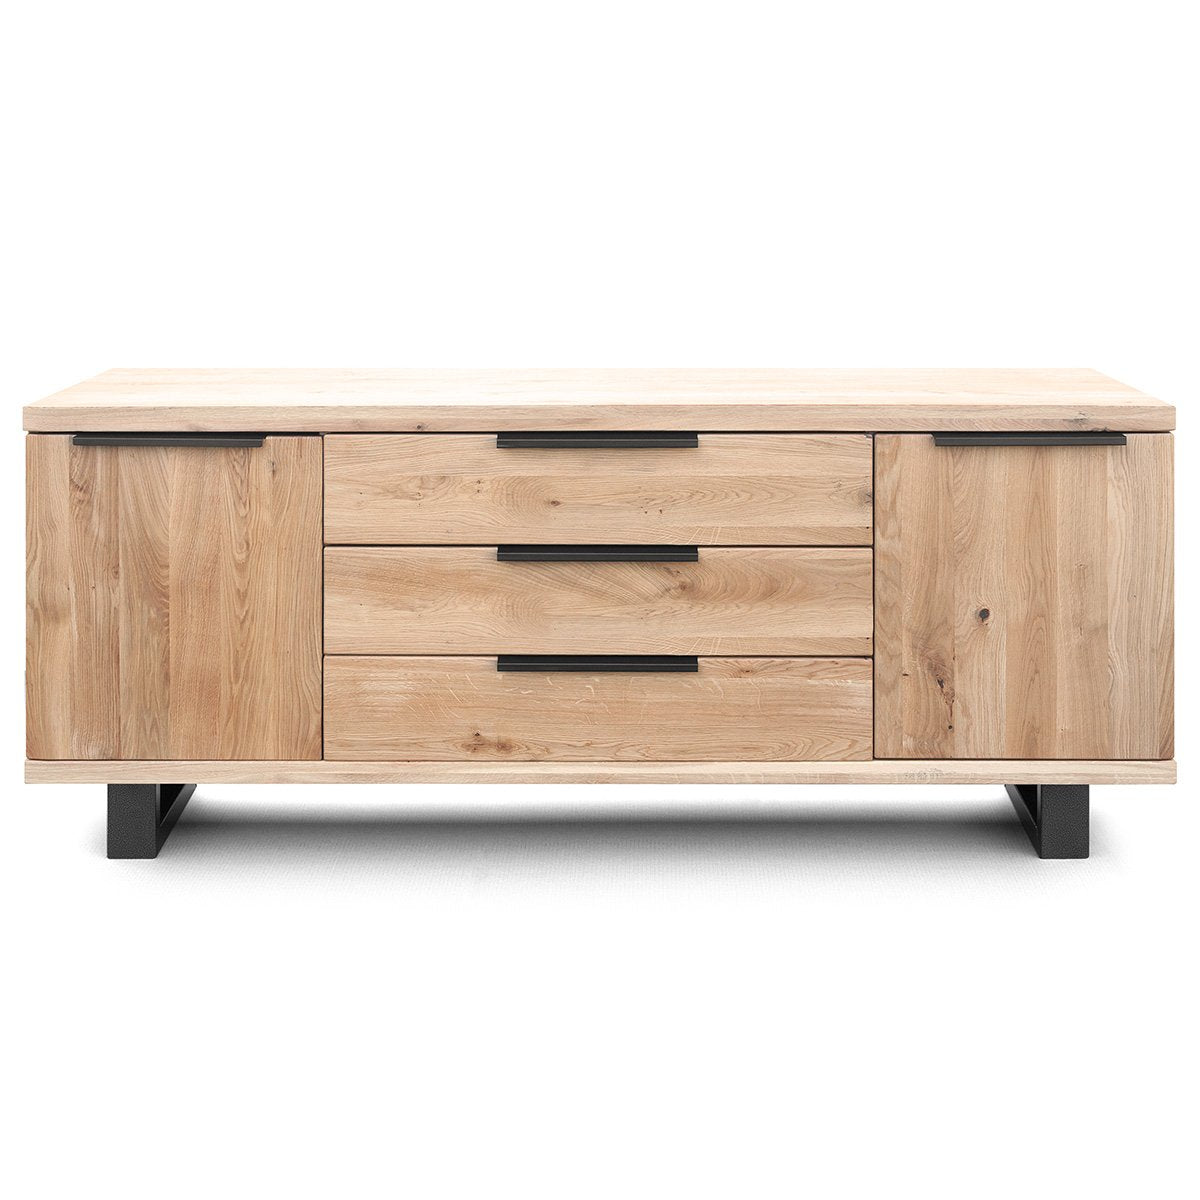 Graphitbeine | Sideboard-Buffet-Roma-Gold